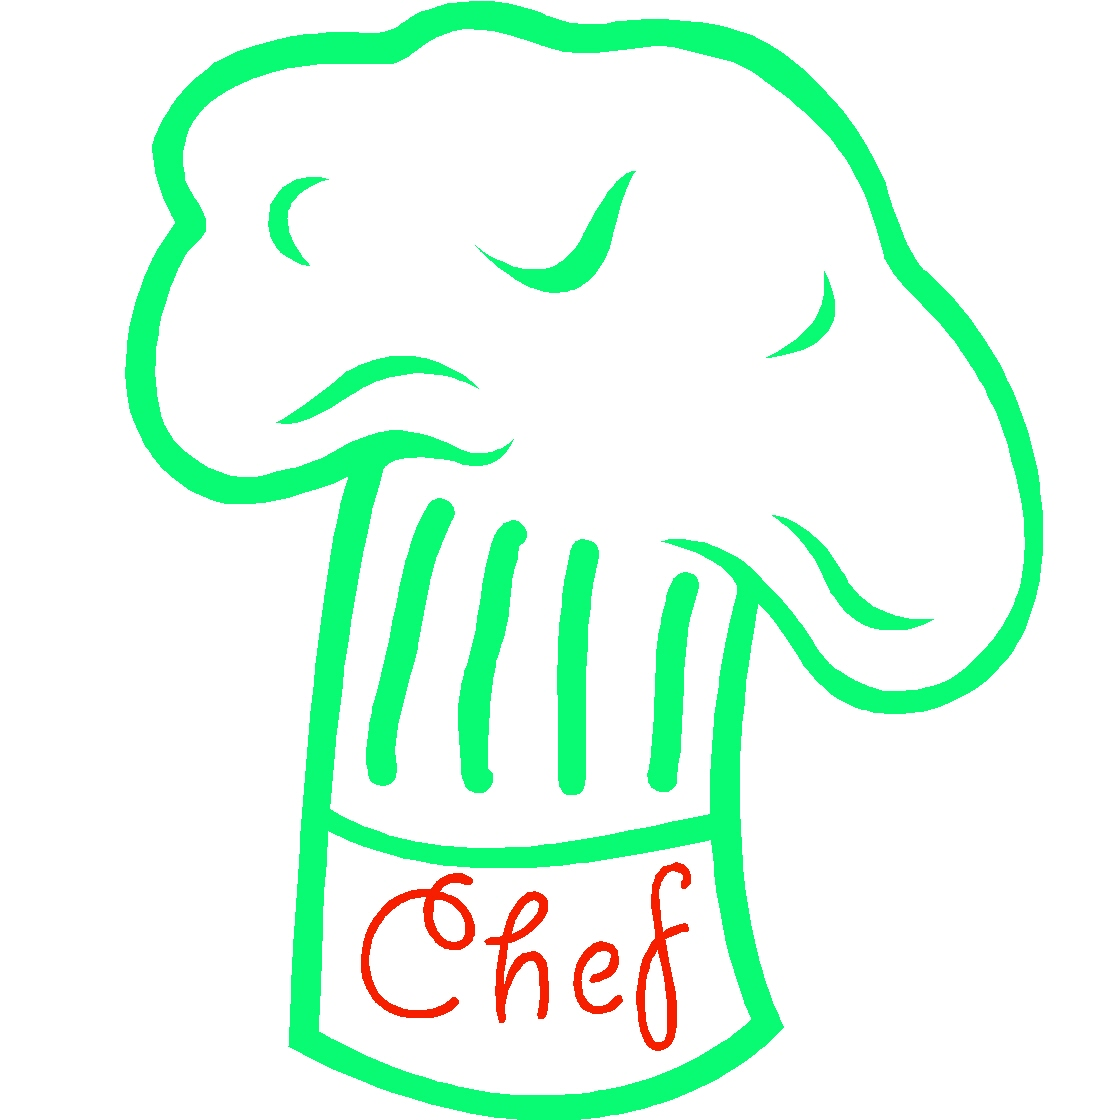 clipart cook hat - photo #41